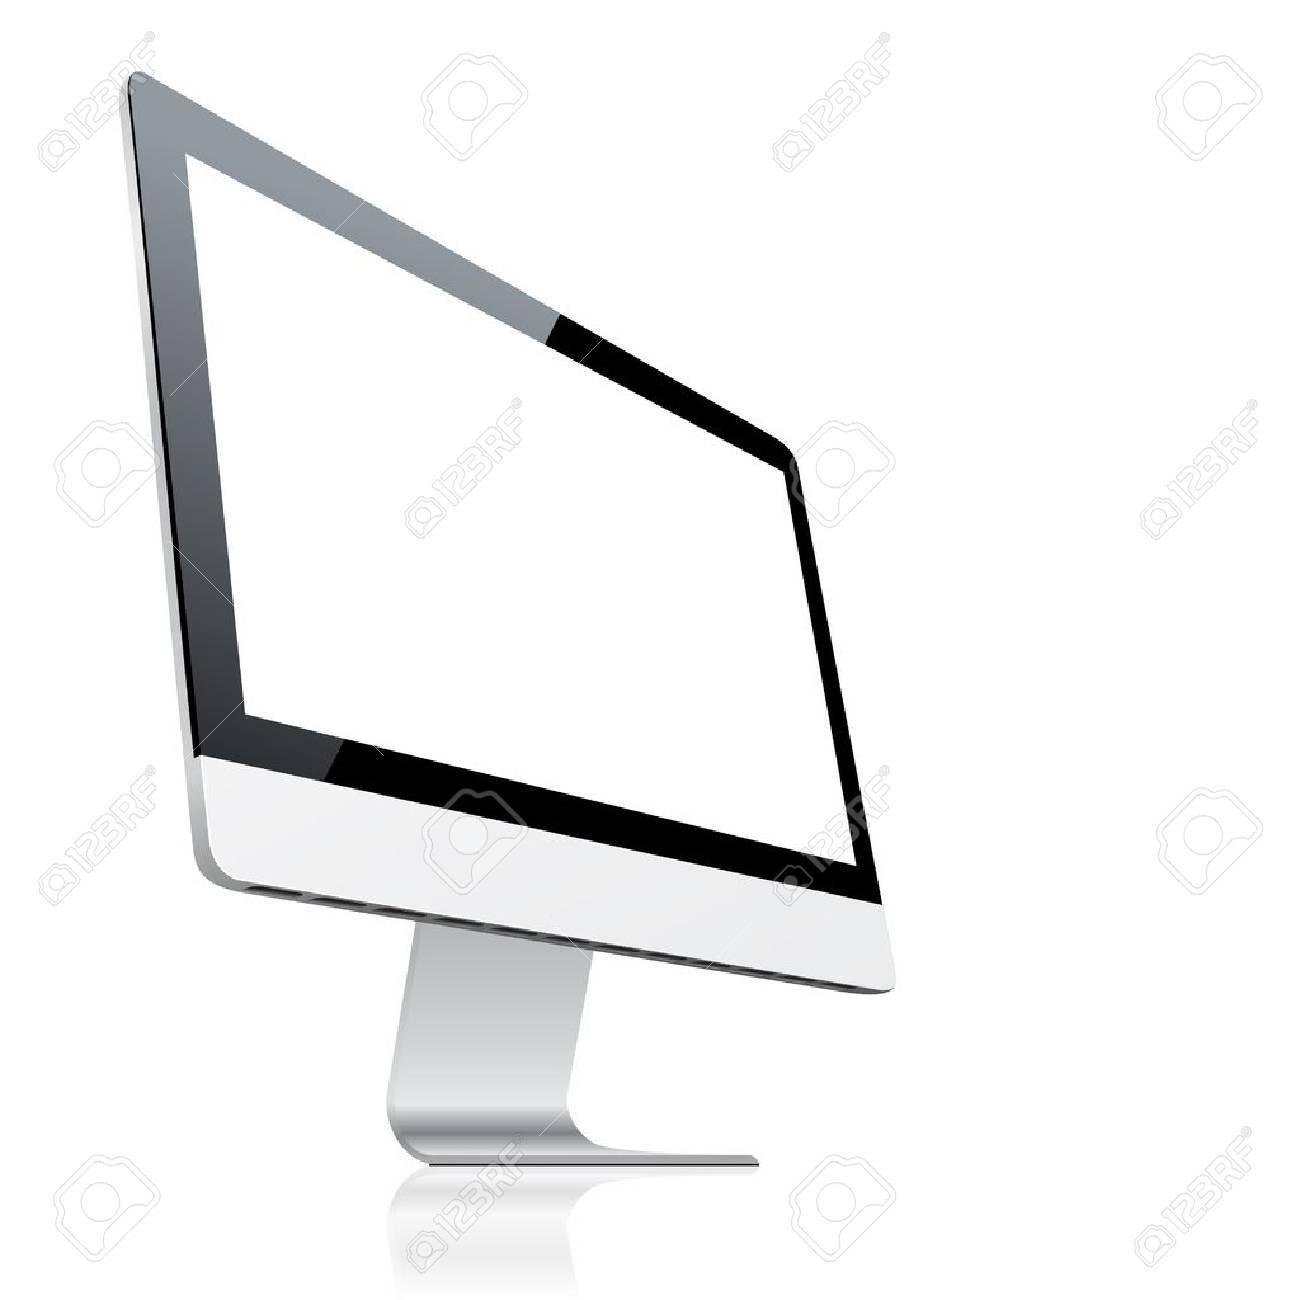 Computer monitor Stock Vector - 16627231